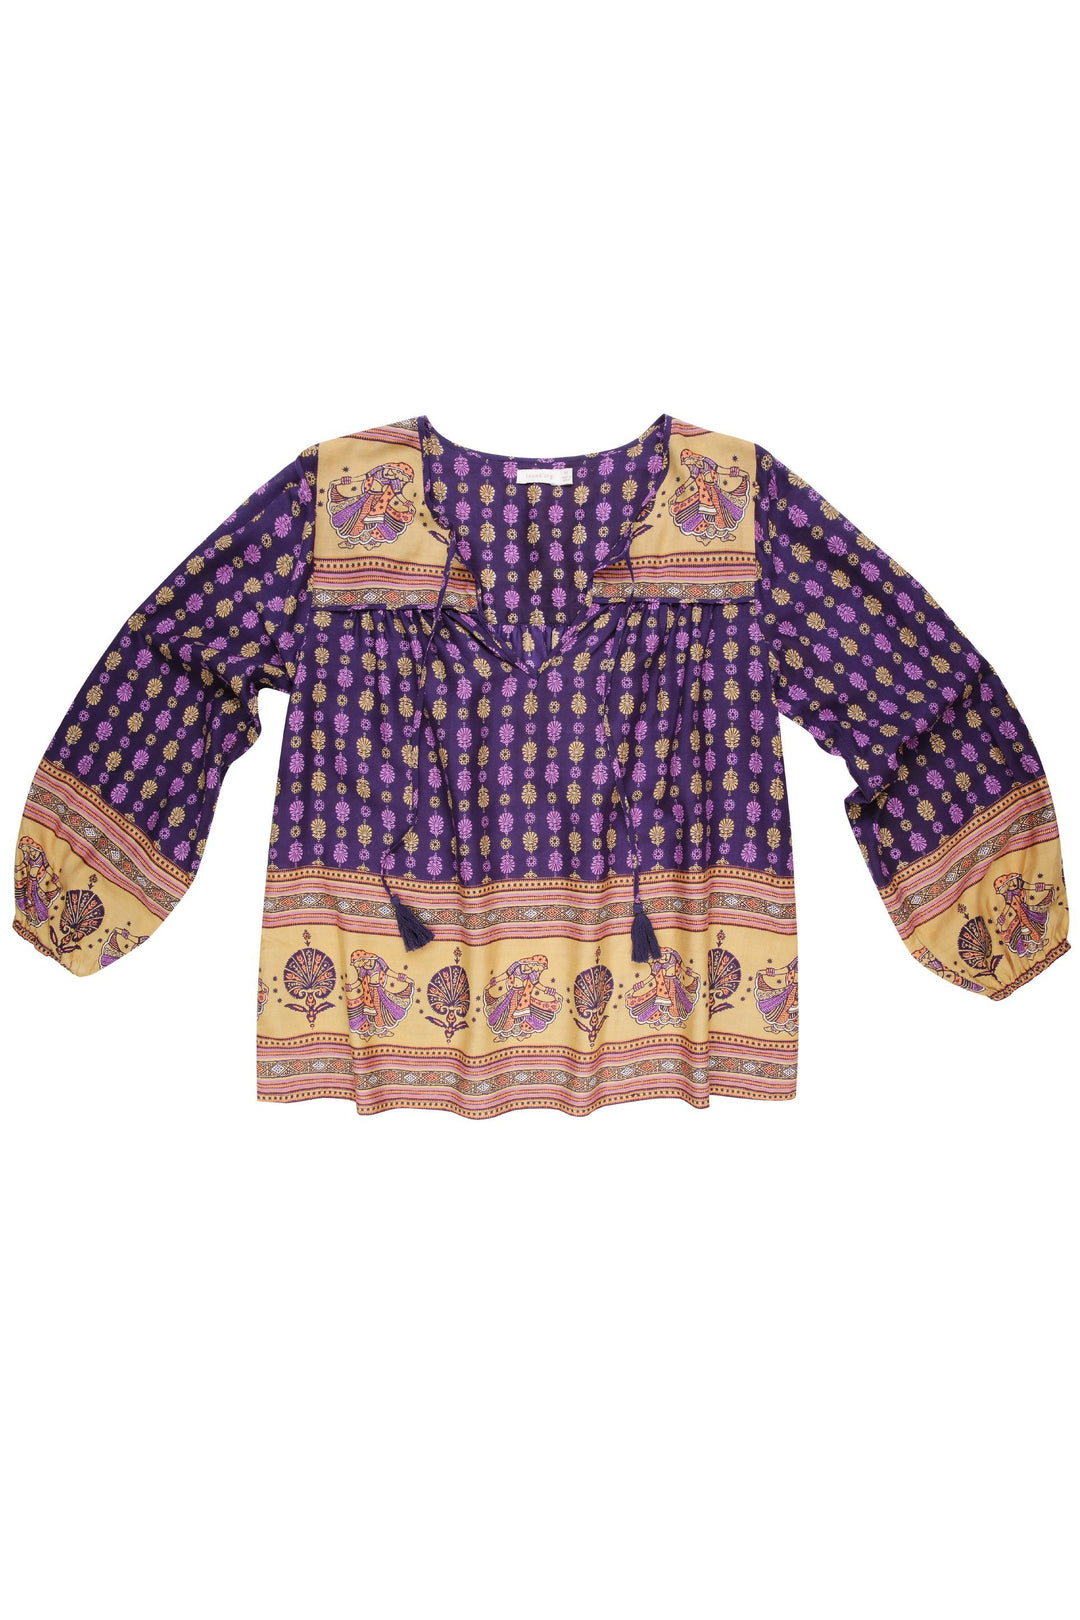 final sale: Chakri Folk Blouse Moondancer